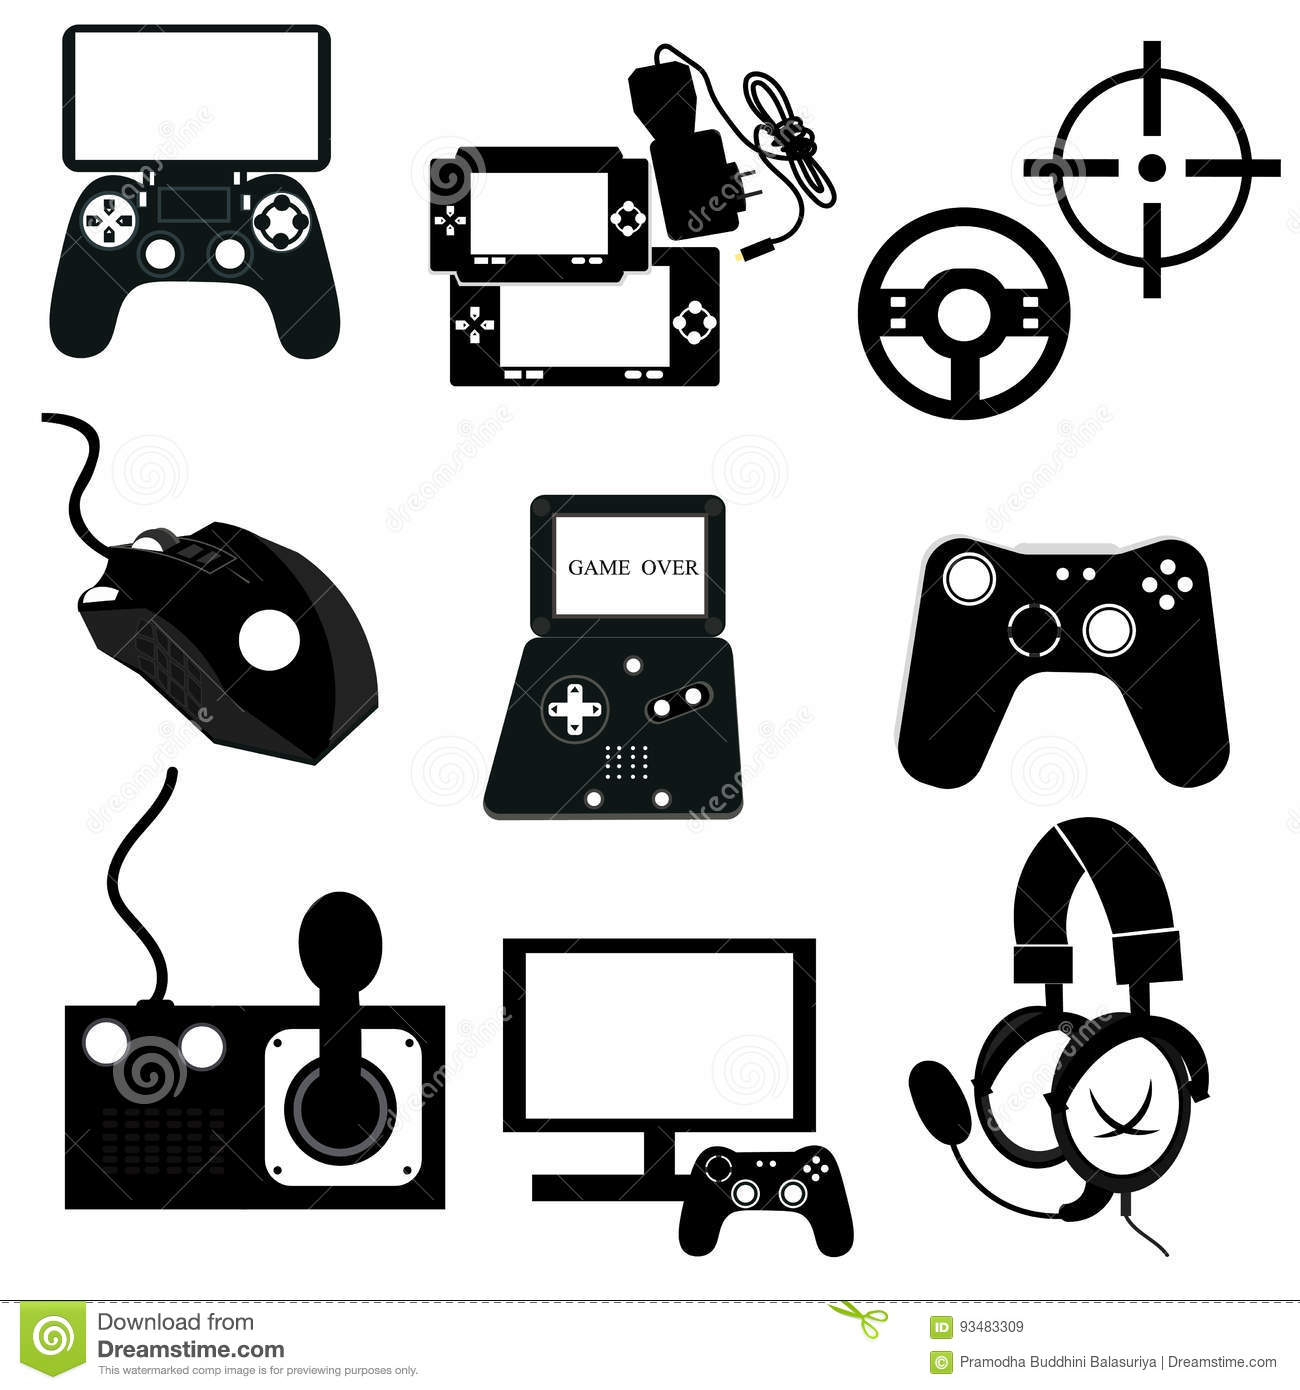 Video Game Linear Icon Set Vector Stock Vector - Illustration of ... 9a814f2a4e1d